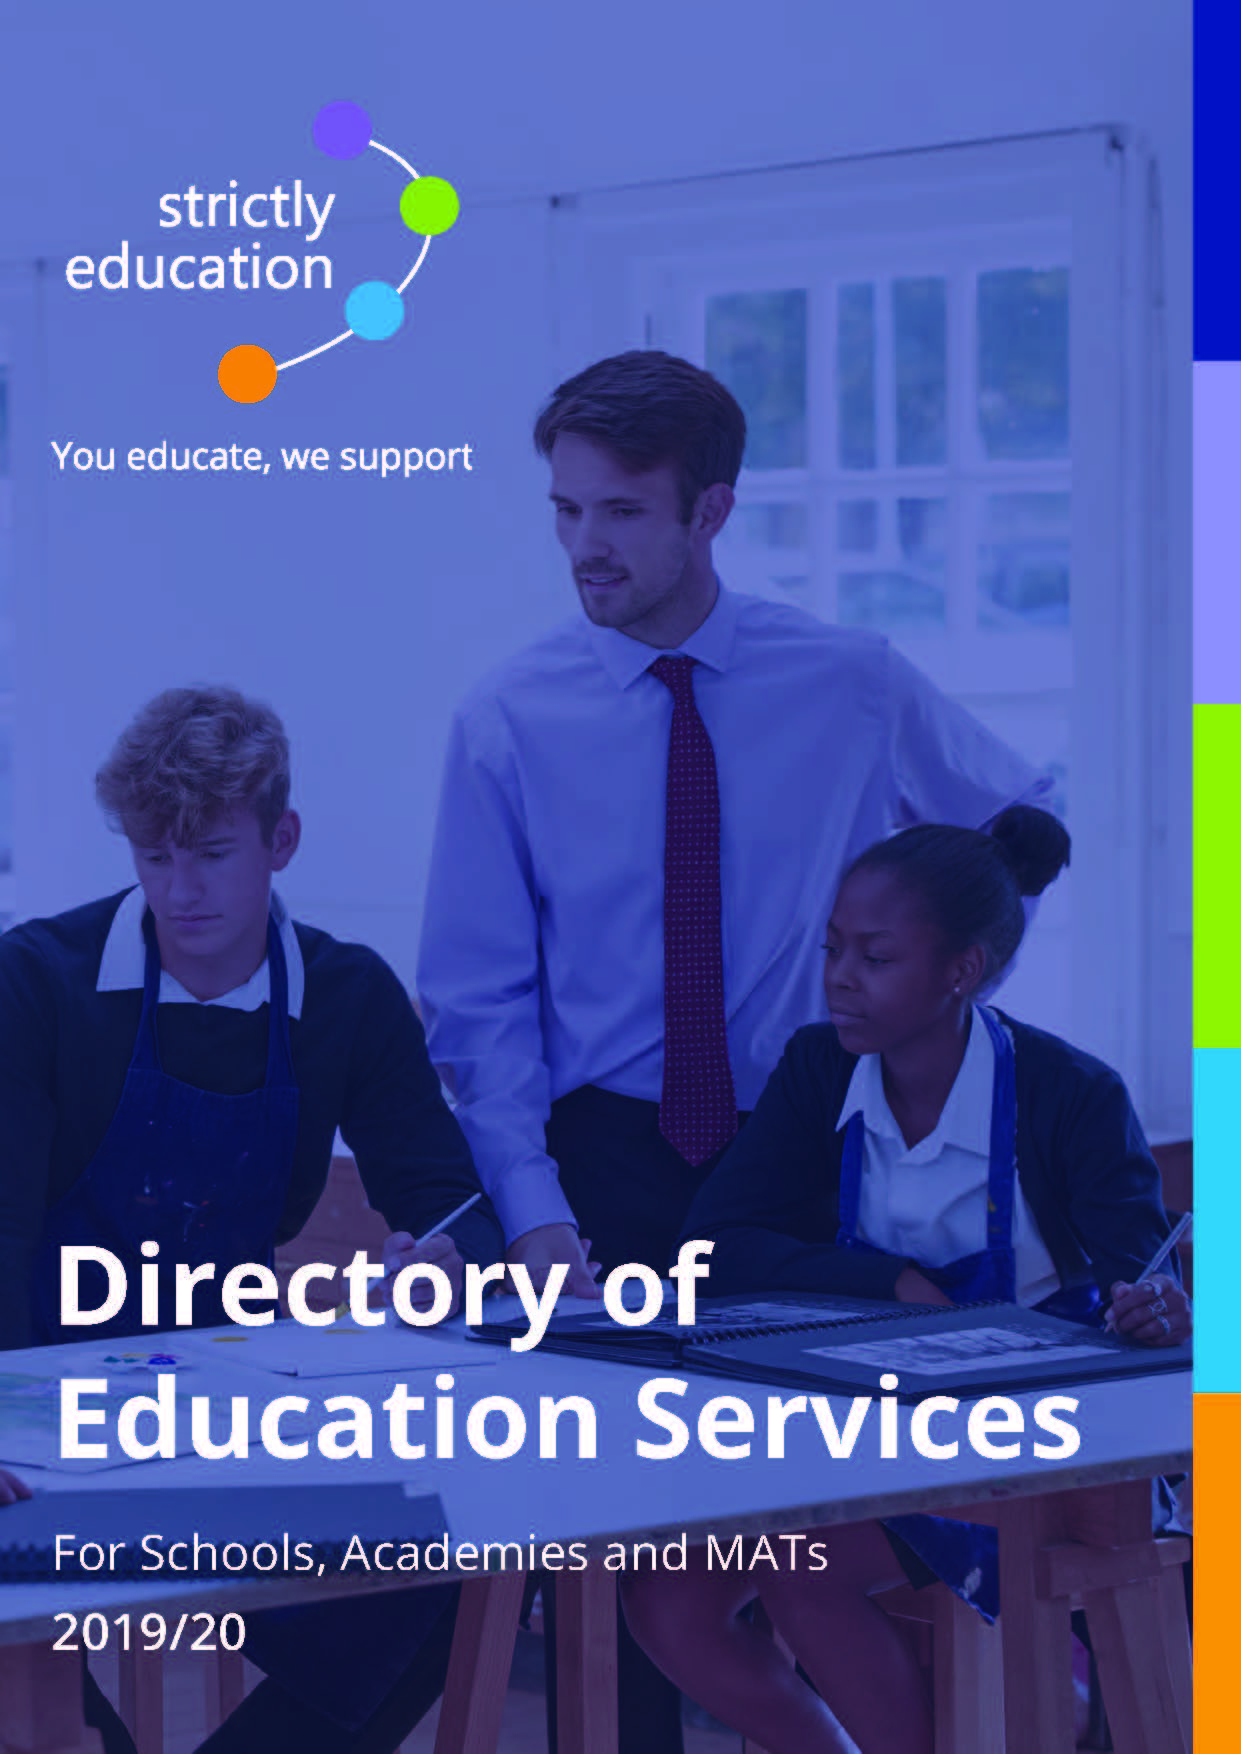 Directory of Education Services 2019/20